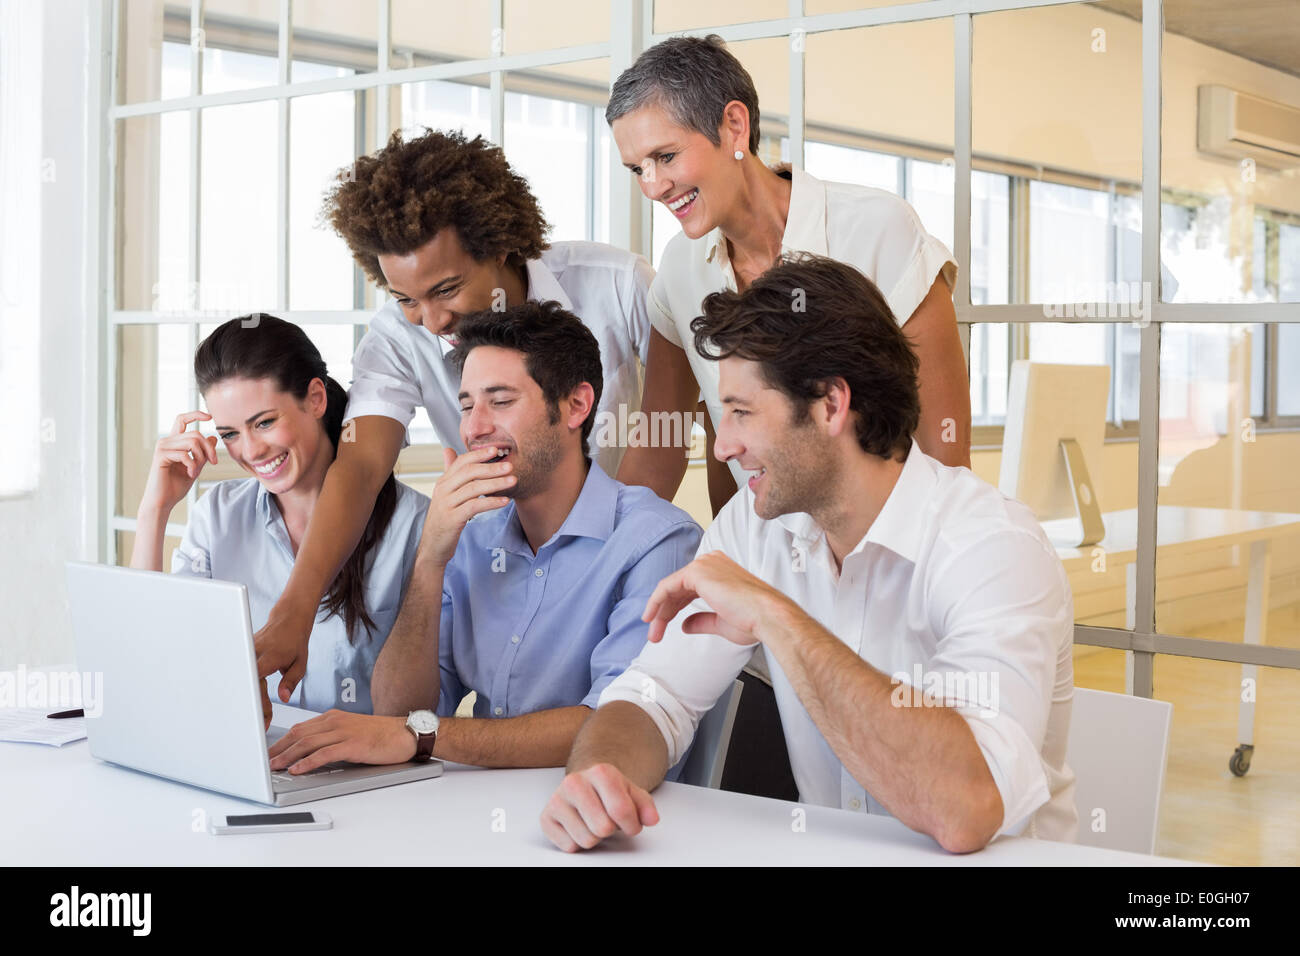 Rire les gens d'affaires while looking at laptop Photo Stock